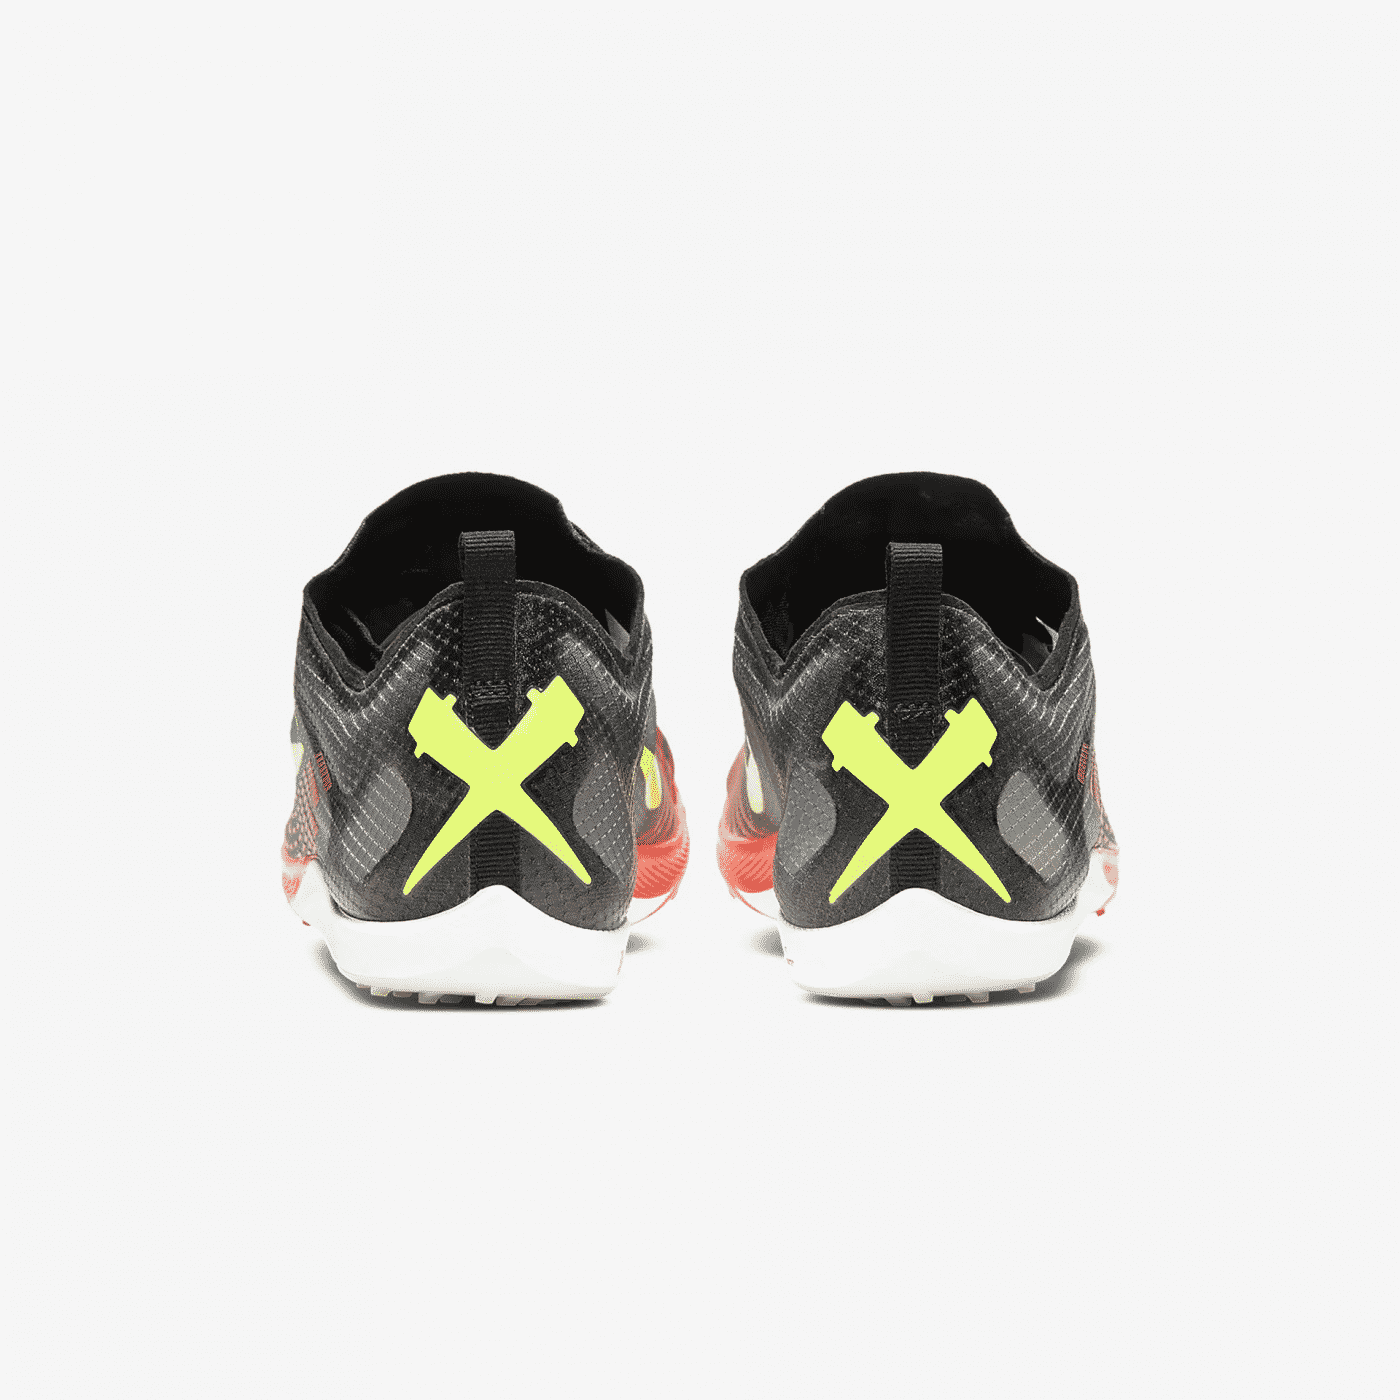 nike_pointes_cross_zoom_victory_XC_5_4